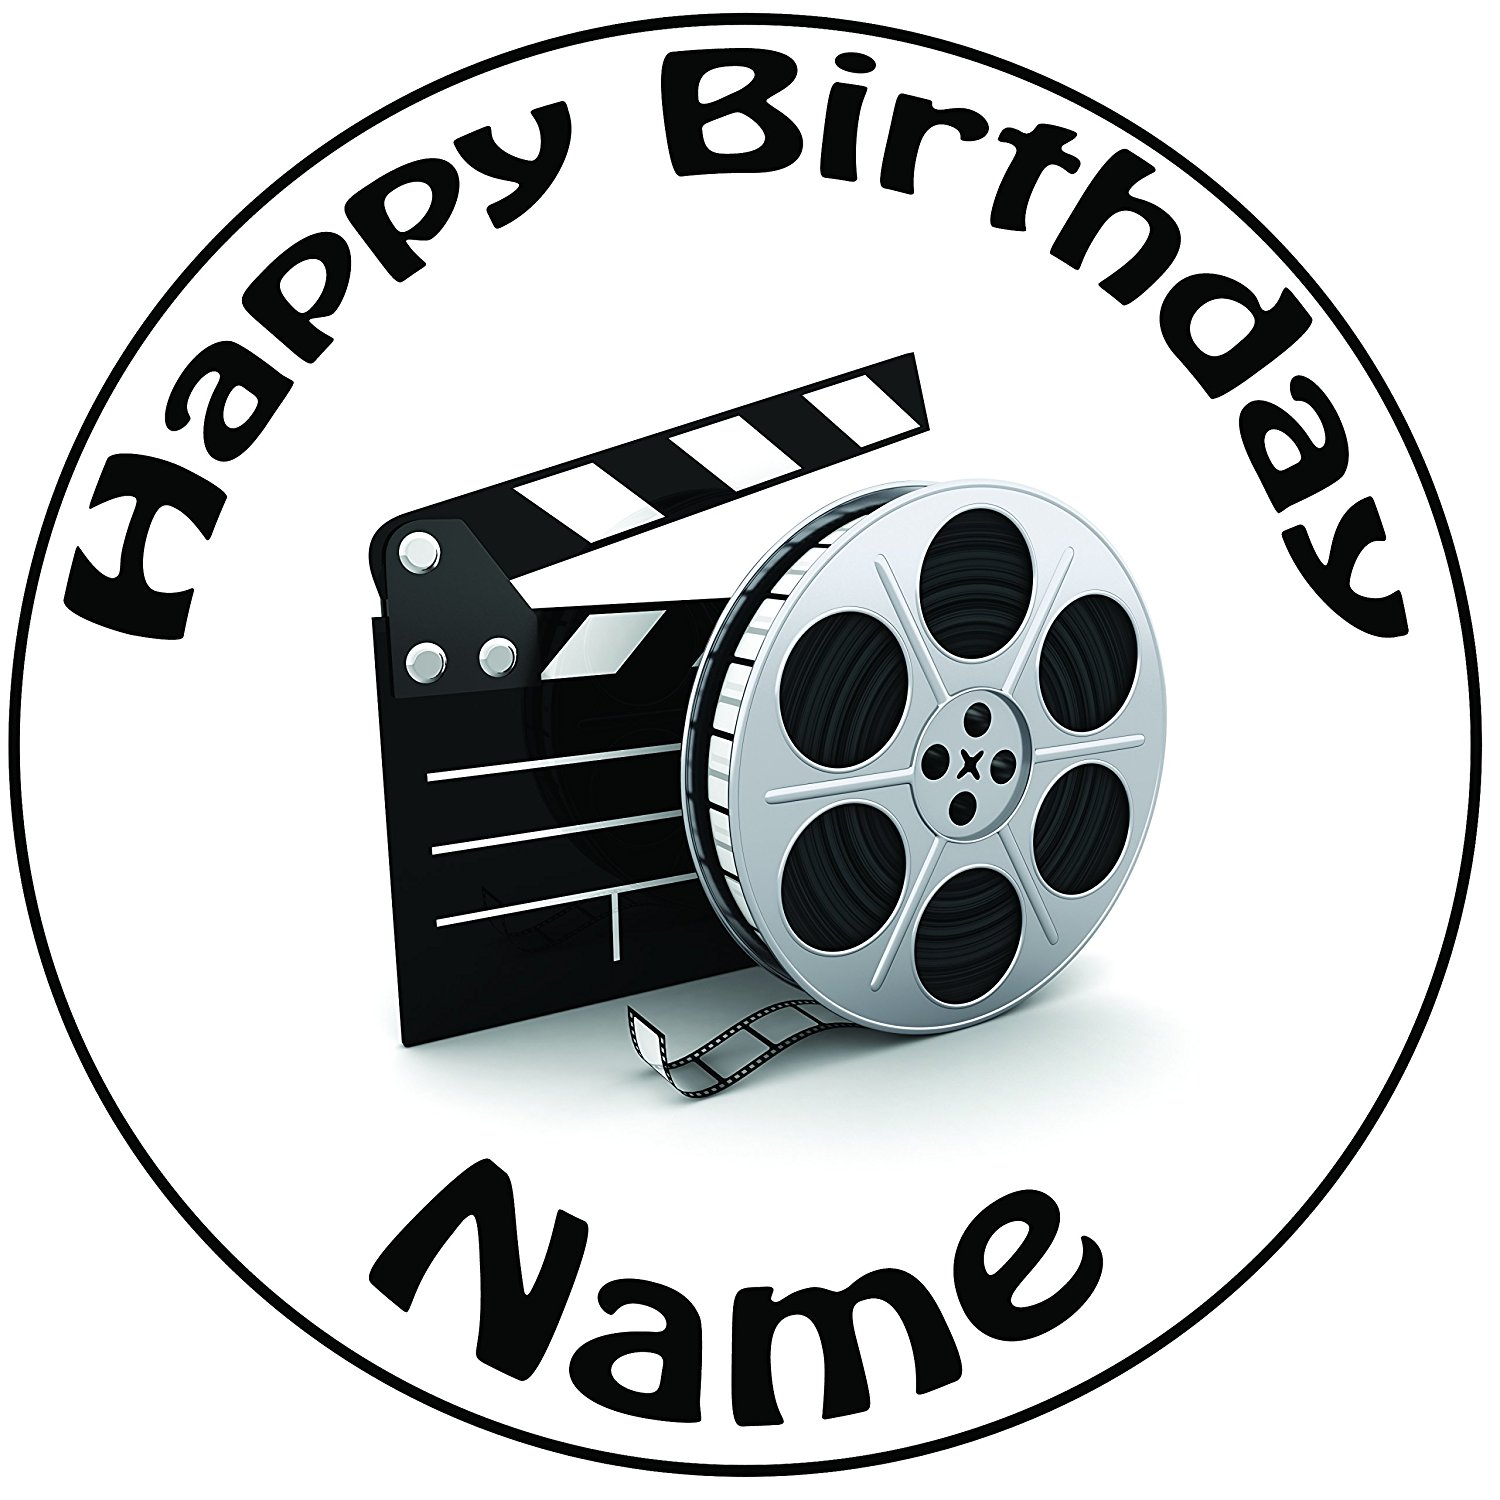 1500x1500 Personalised Movie Film Reel And Clapper Board Cake Topper